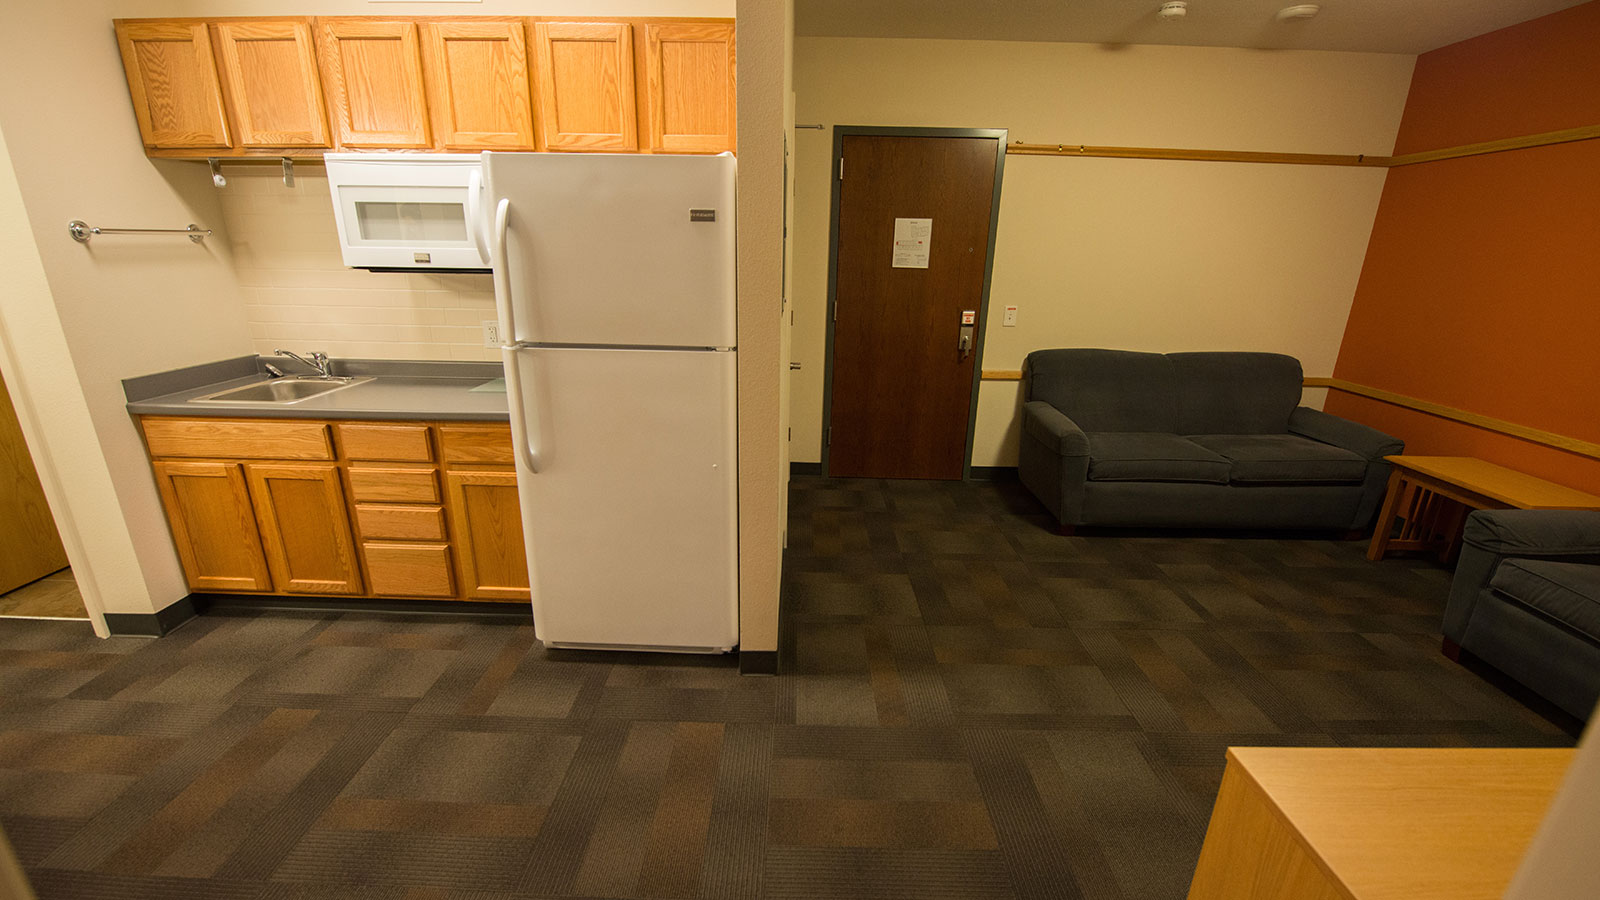 Living and kitchenette in the guest housing dorm.